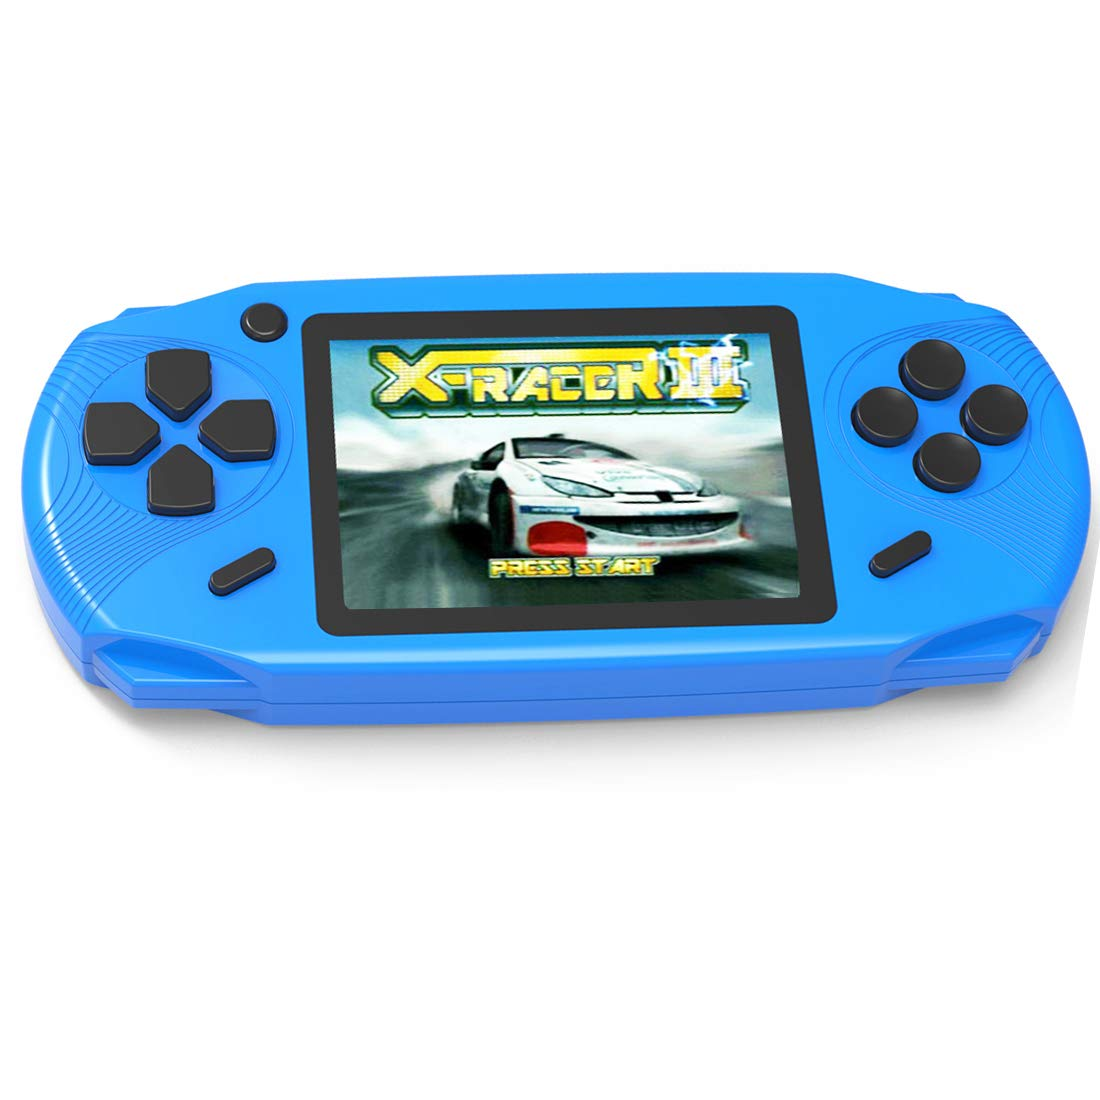 Beijue 16 Bit Handheld Games for Kids Adults 3.0'' Large Screen Preloaded 100 HD Modern Video Games Seniors Electronic Game Player for Boys Girls Birthday Xmas Present (Blue) by Beijue